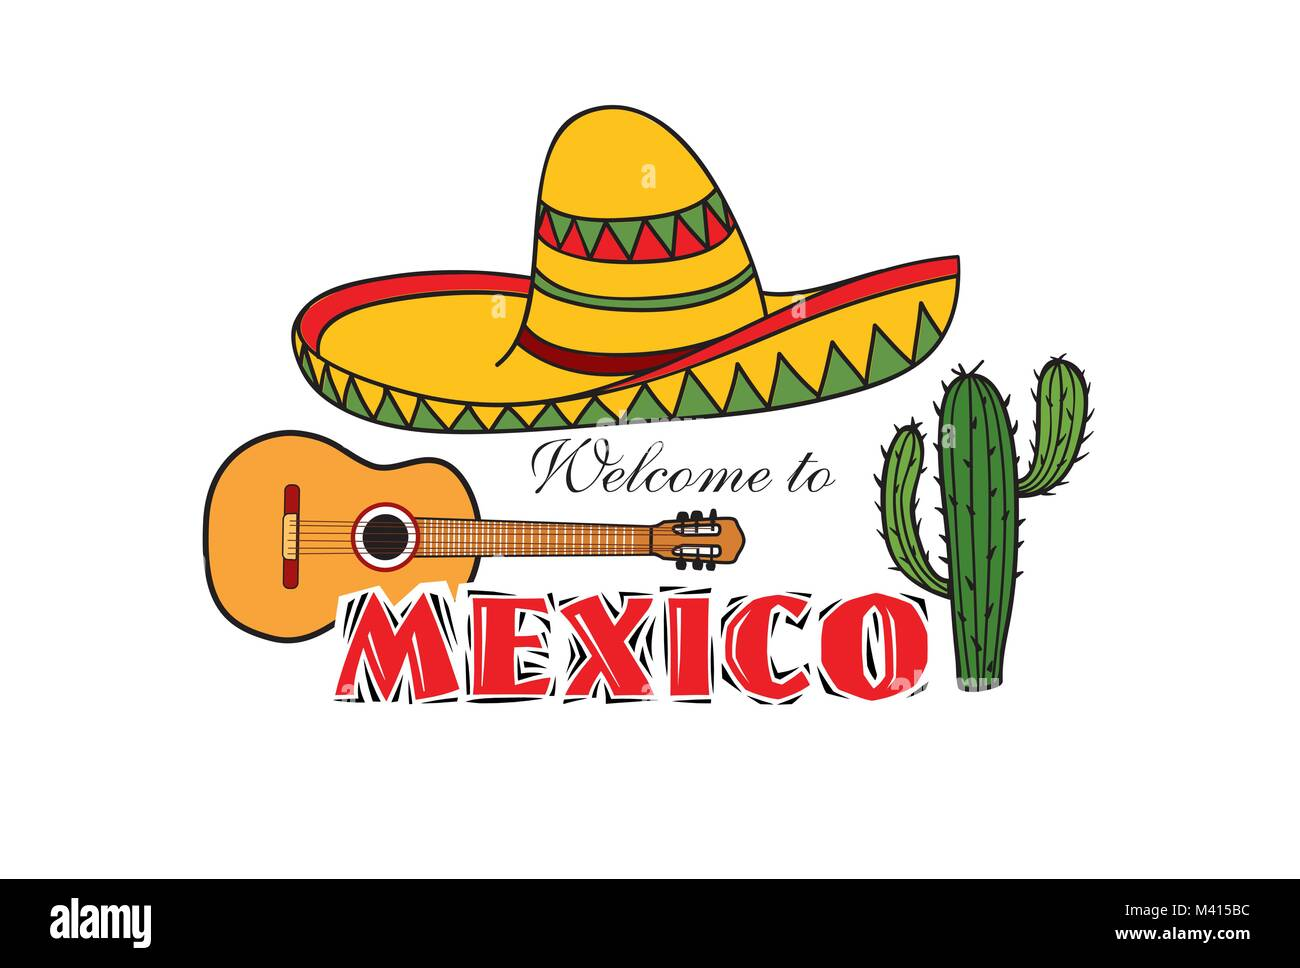 1c9468b1220 Mexican icon. Welcome to Mexico sign. Travel sign with cactus and sombrero  hat